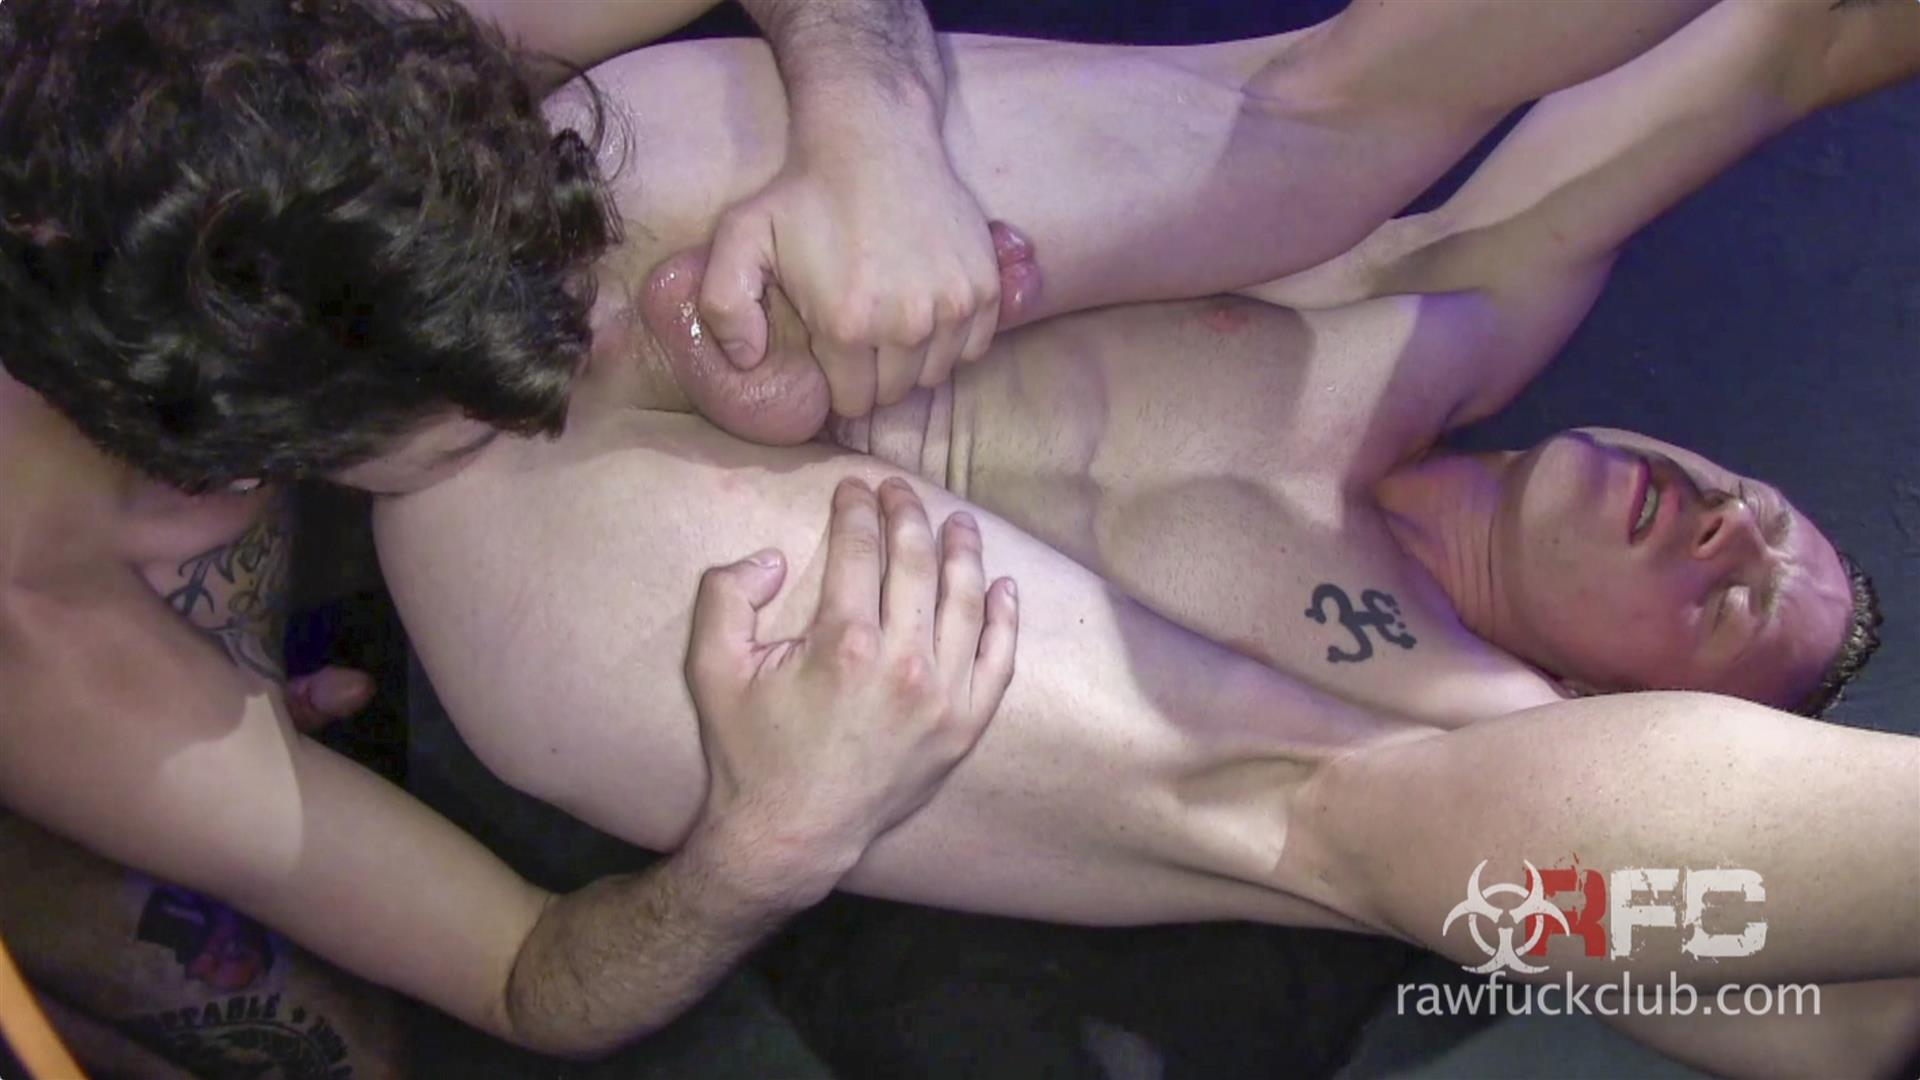 Raw-Fuck-Club-Saxon-West-and-Luke-Harding-Big-Dick-Bareback-Sex-Amateur-Gay-Porn-6 Luke Harding Breeding Saxon West's Muscular Ass